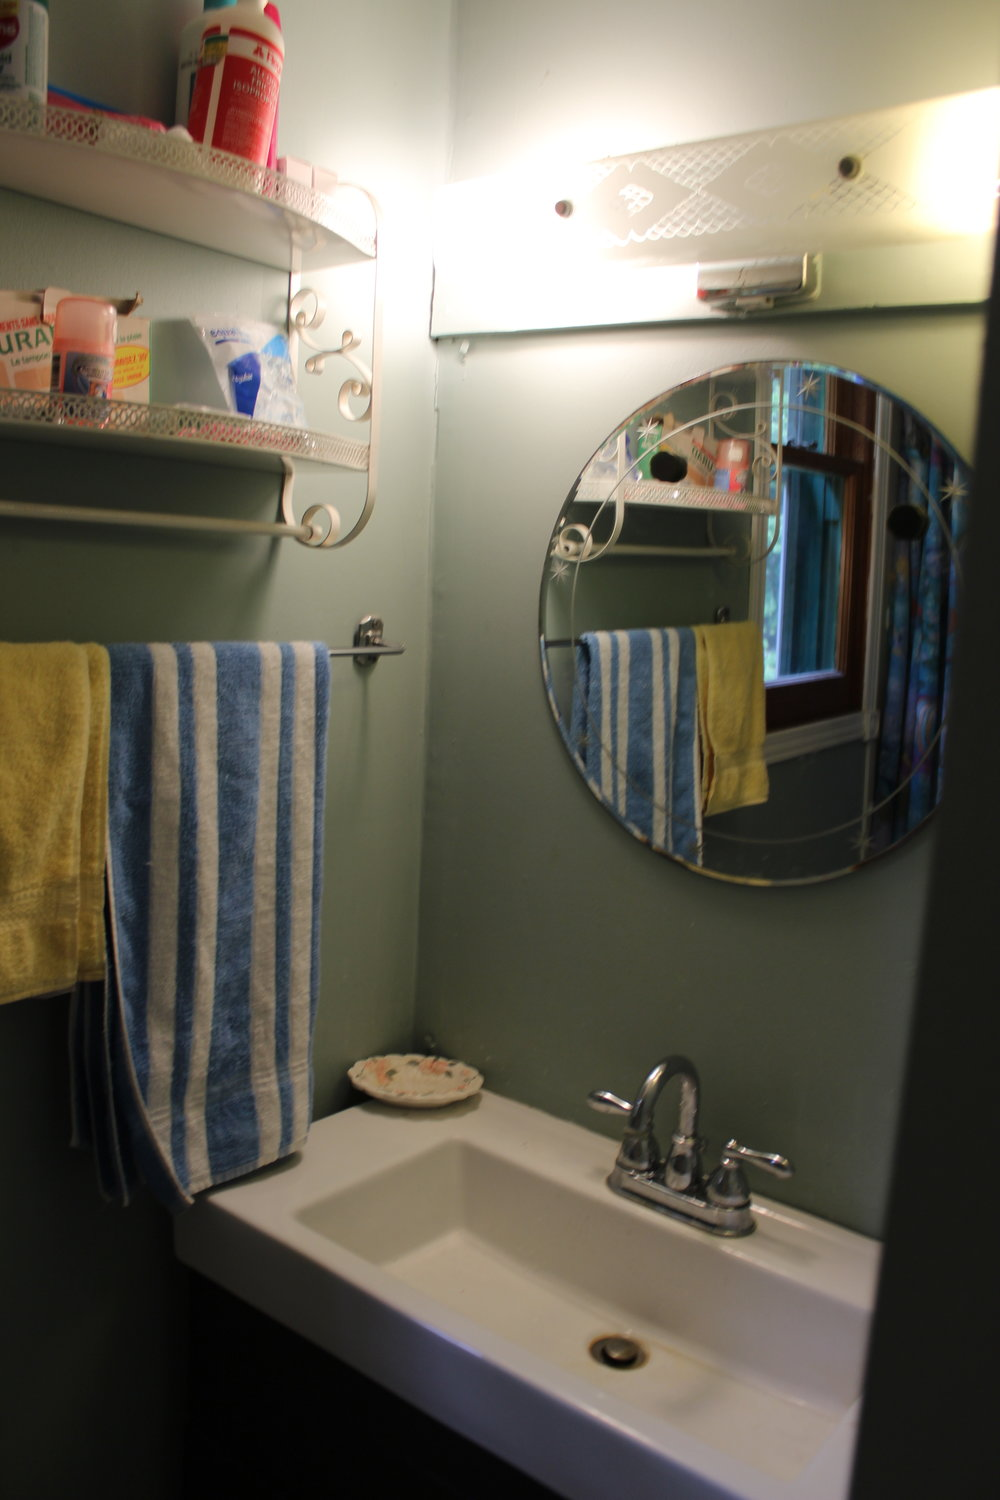 ^Before, to stand at this small vanity, you were literally wedged between the toilet and the sink. There was no real counterspace either, and only one person could be brushing their teeth at a time.